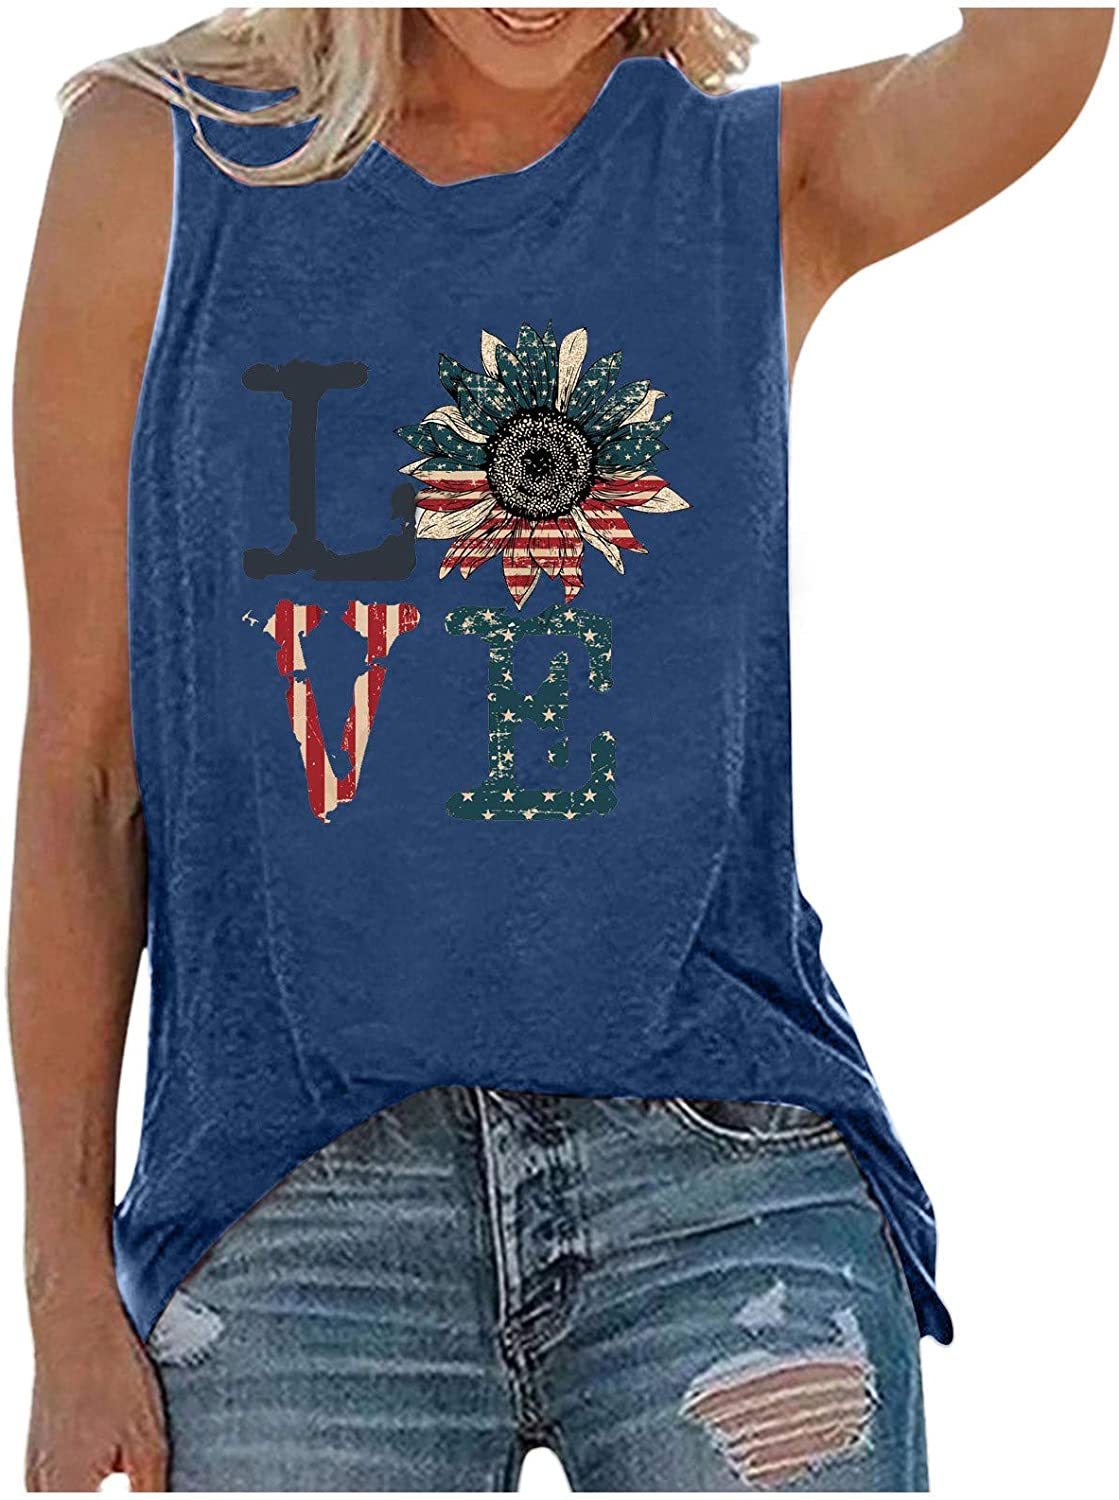 Cute Tops for Women Sexy,USA Flag Printed Tank Tops Women Sleeveless Tee T-Shirt for Independence Day